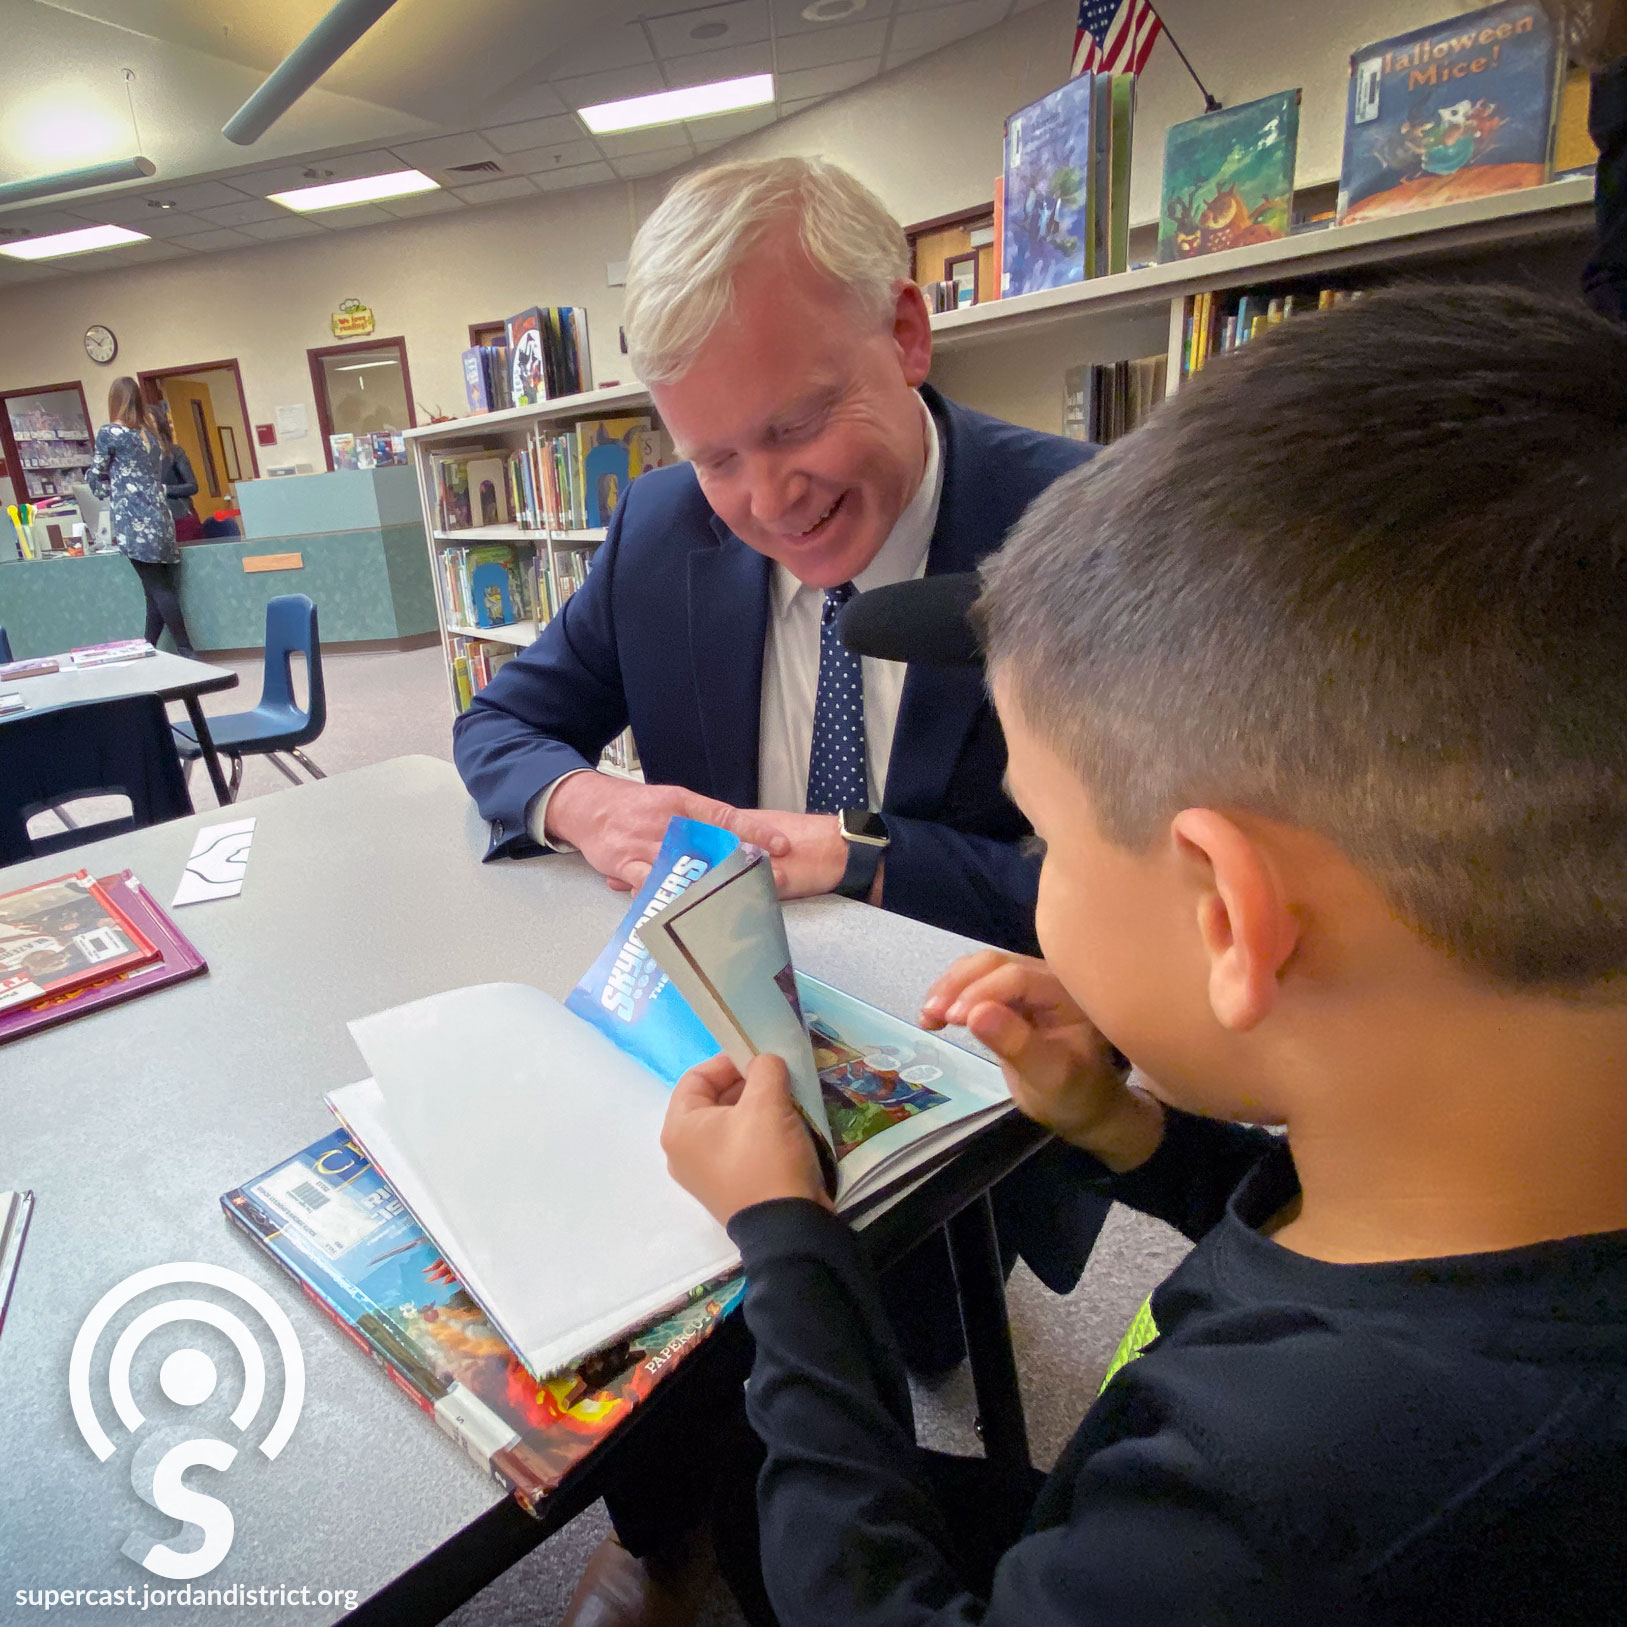 Superintendent Godfrey reads with a student